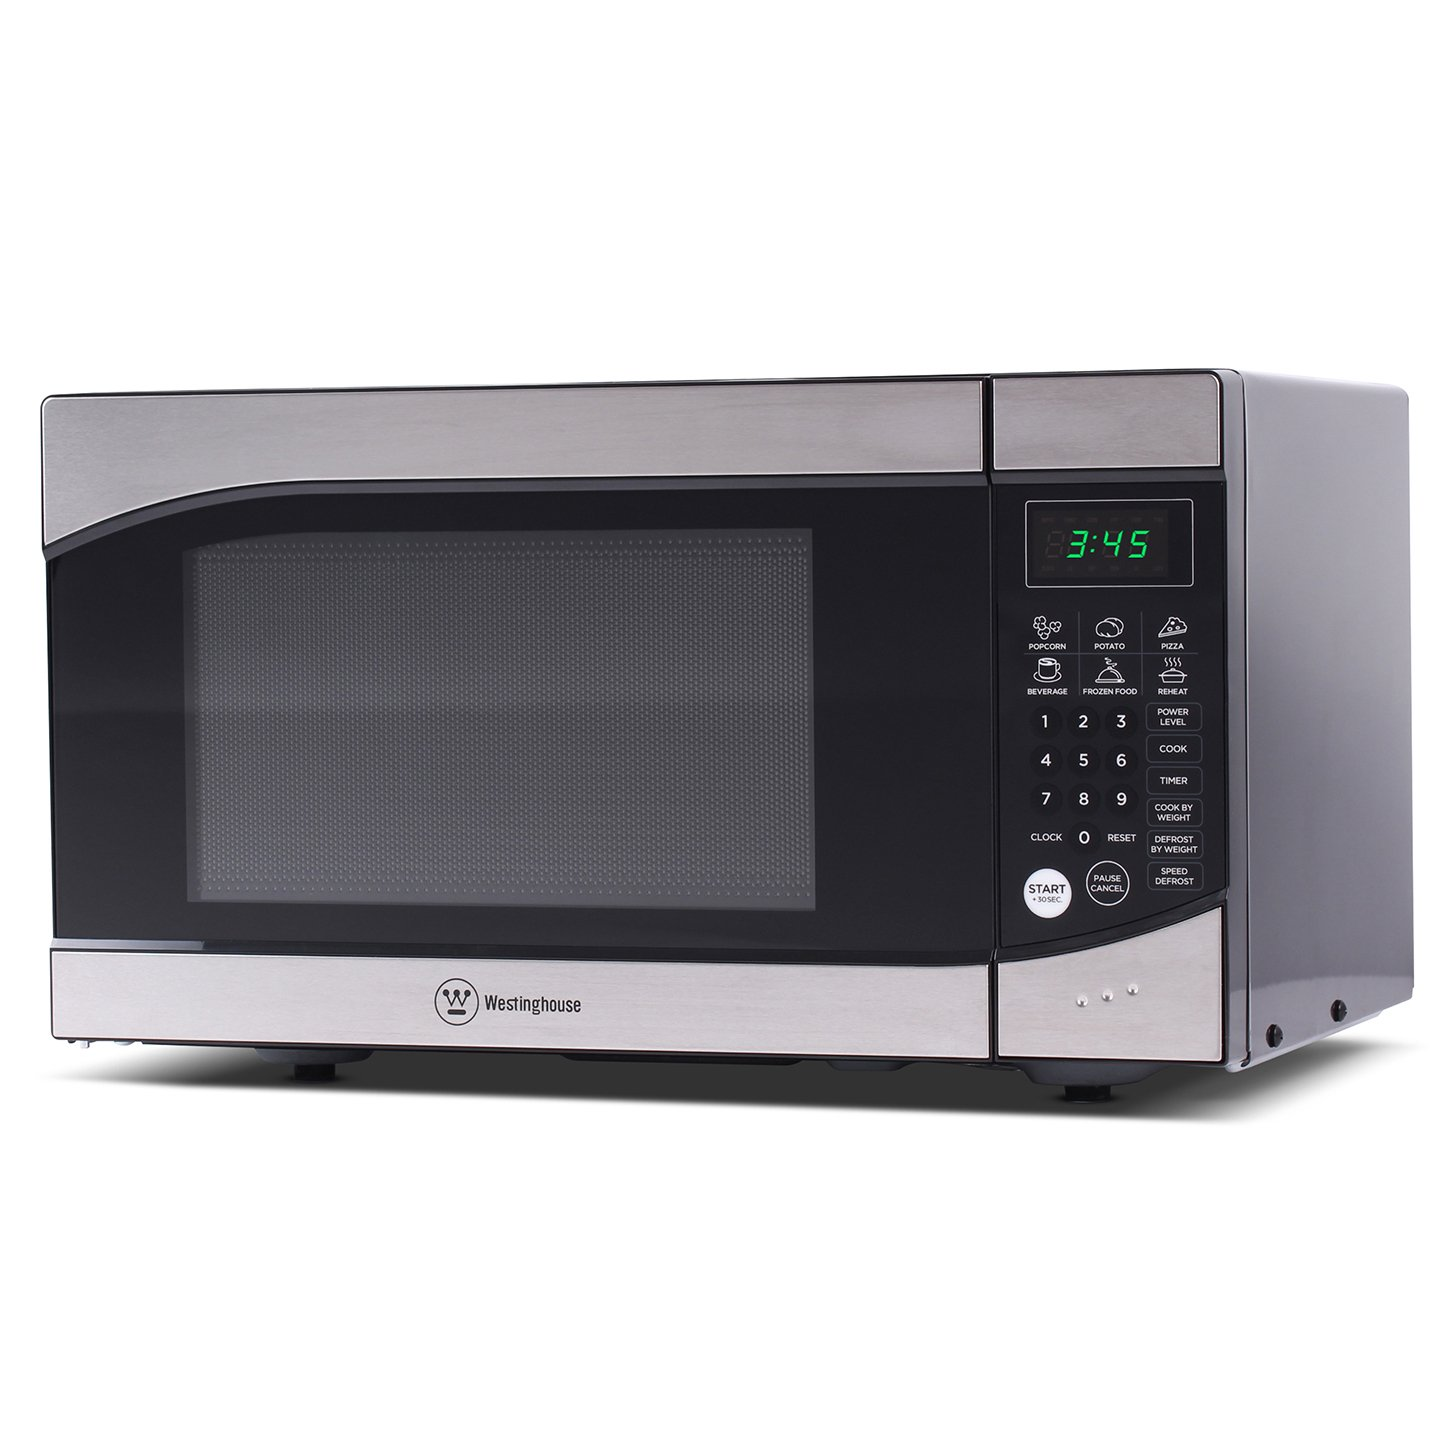 Westinghouse WM009, Countertop Microwave Oven, 900 Watt, 0.9 Cubic Feet, Stainless Steel Front, Black Cabinet, Small, Trim